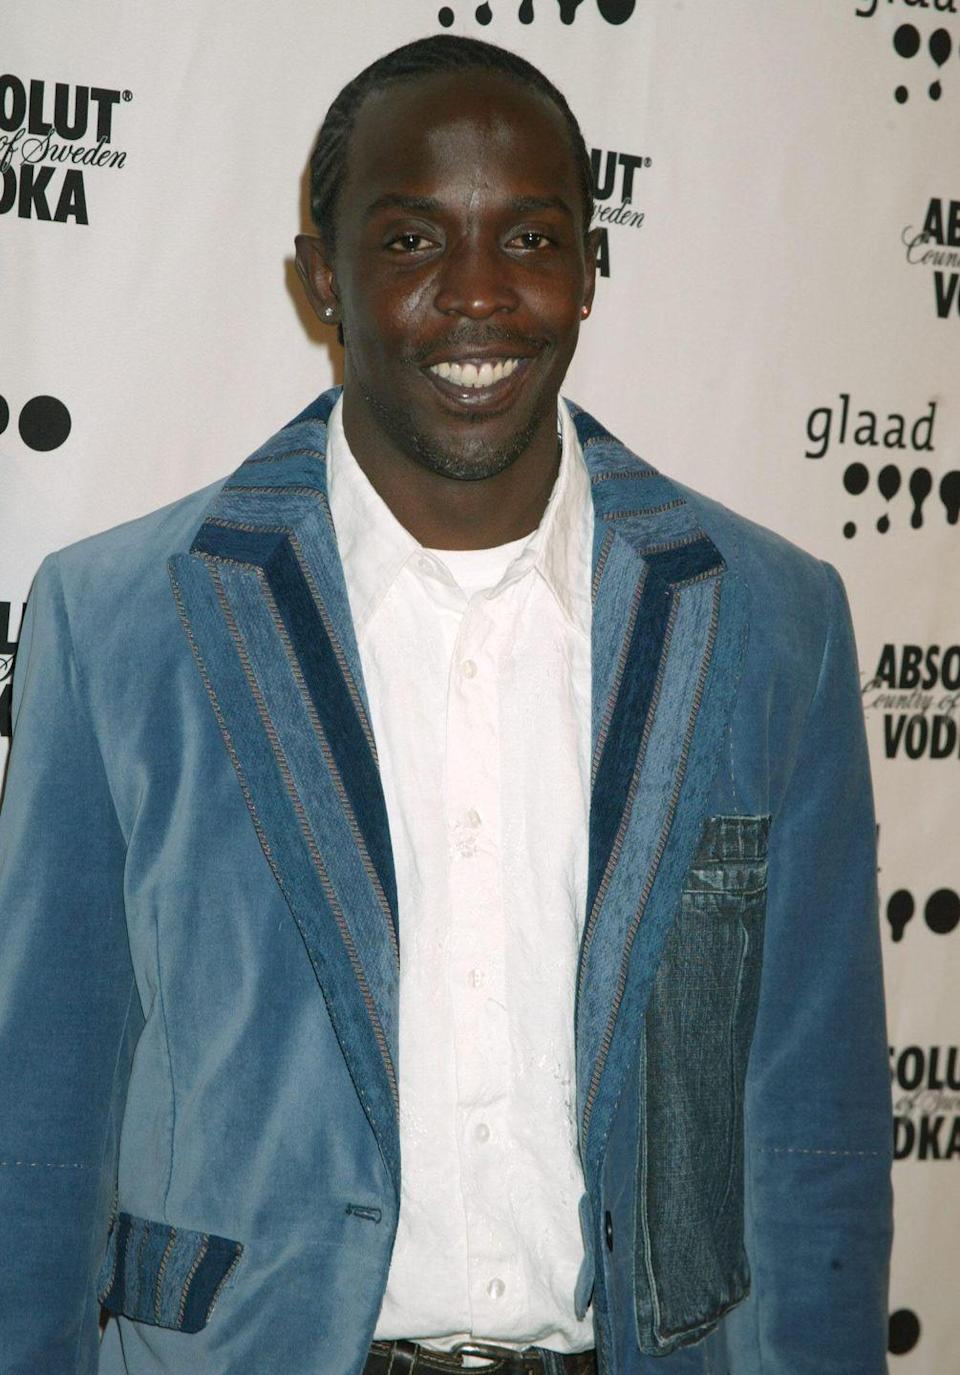 """<p>Williams' character, Omar Little, was beloved by fans—even former President Barack Obama <a href=""""http://www.usatoday.com/story/theoval/2015/03/27/obama-the-wire-david-simon-drugs-crime-omar/70539736/"""" rel=""""nofollow noopener"""" target=""""_blank"""" data-ylk=""""slk:said Little was his favorite"""" class=""""link rapid-noclick-resp"""">said Little was his favorite</a>. But Williams took some of his characters' demons with him off of the set. </p><p>After season 1, Williams became addicted to cocaine and was evicted from his Brooklyn home. """"I was using Omar as a means of escape. Now I don't use my job as a way to define me: it's what I do, not who I am. I have that understanding now,"""" he told <a href=""""https://www.theguardian.com/film/2015/jan/13/michael-k-williams-interview-omar-the-wire-the-gambler"""" rel=""""nofollow noopener"""" target=""""_blank"""" data-ylk=""""slk:The Guardian"""" class=""""link rapid-noclick-resp""""><em>The Guardian</em></a>.</p>"""